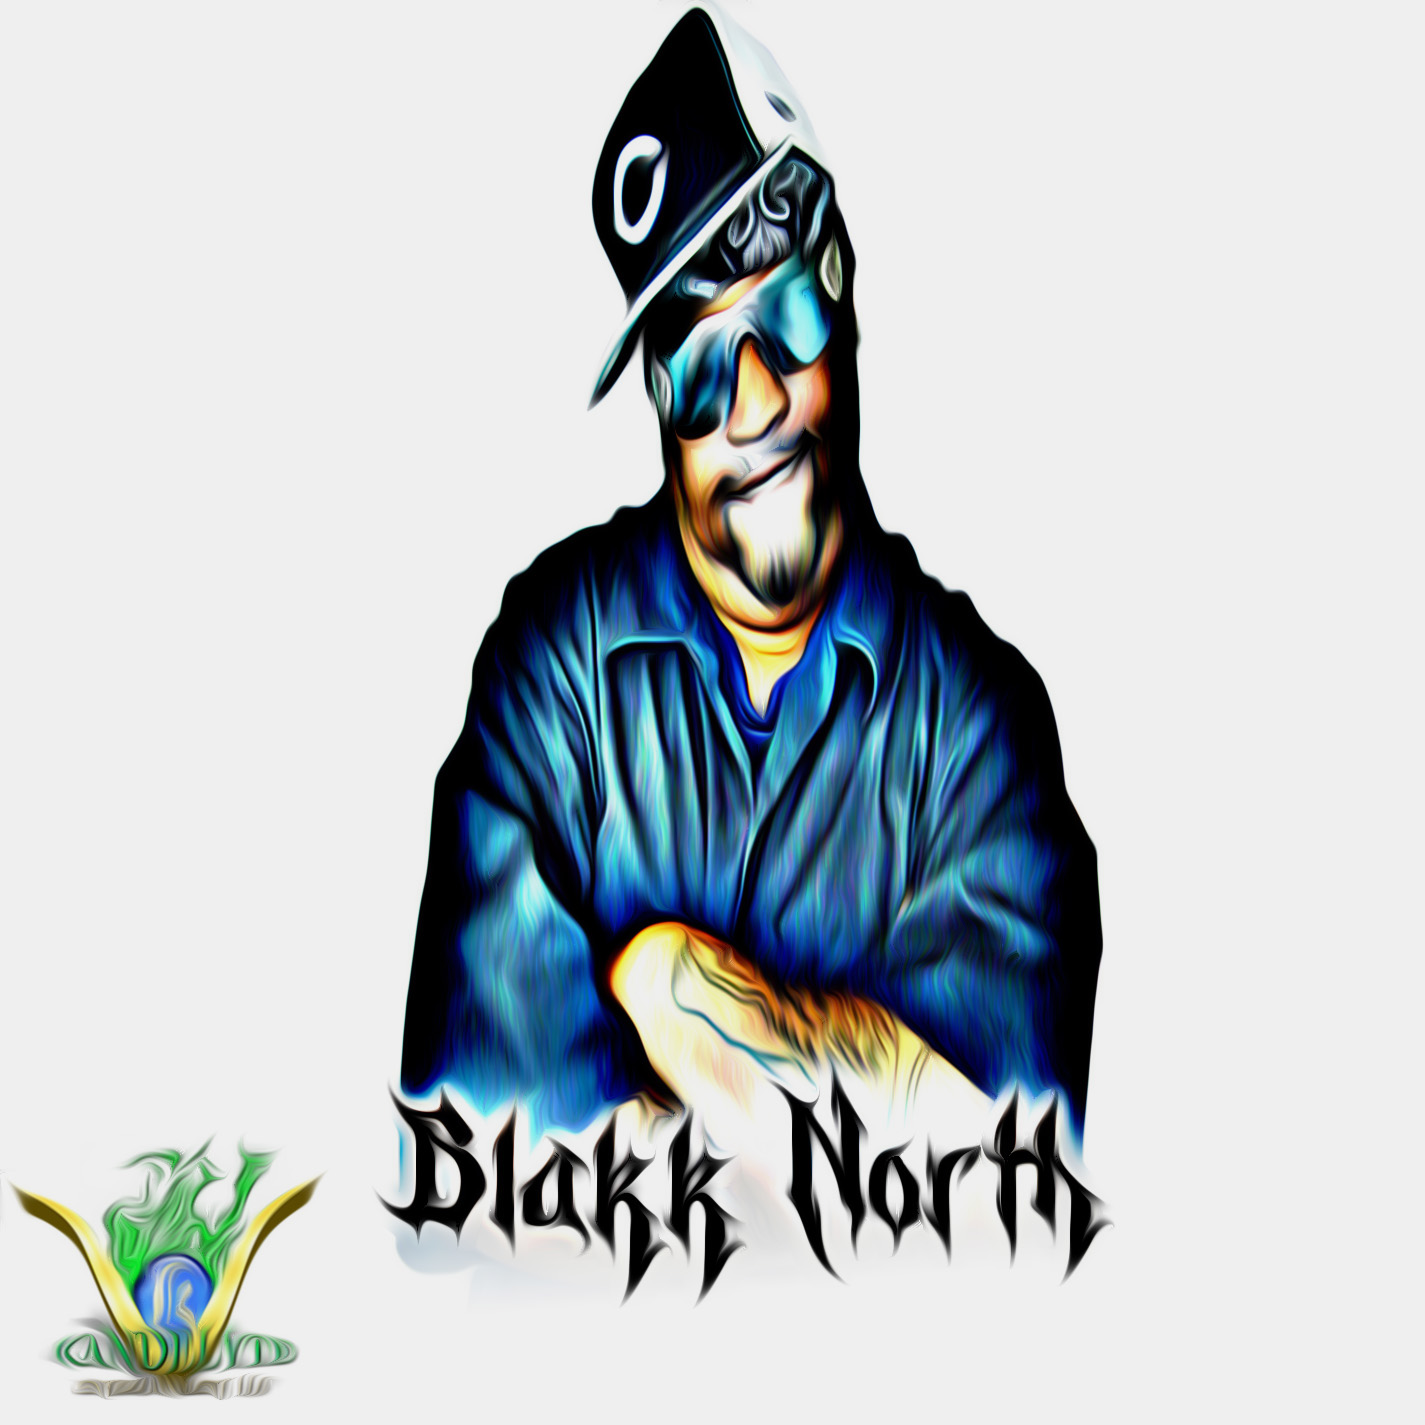 Blakk North2 copy copy